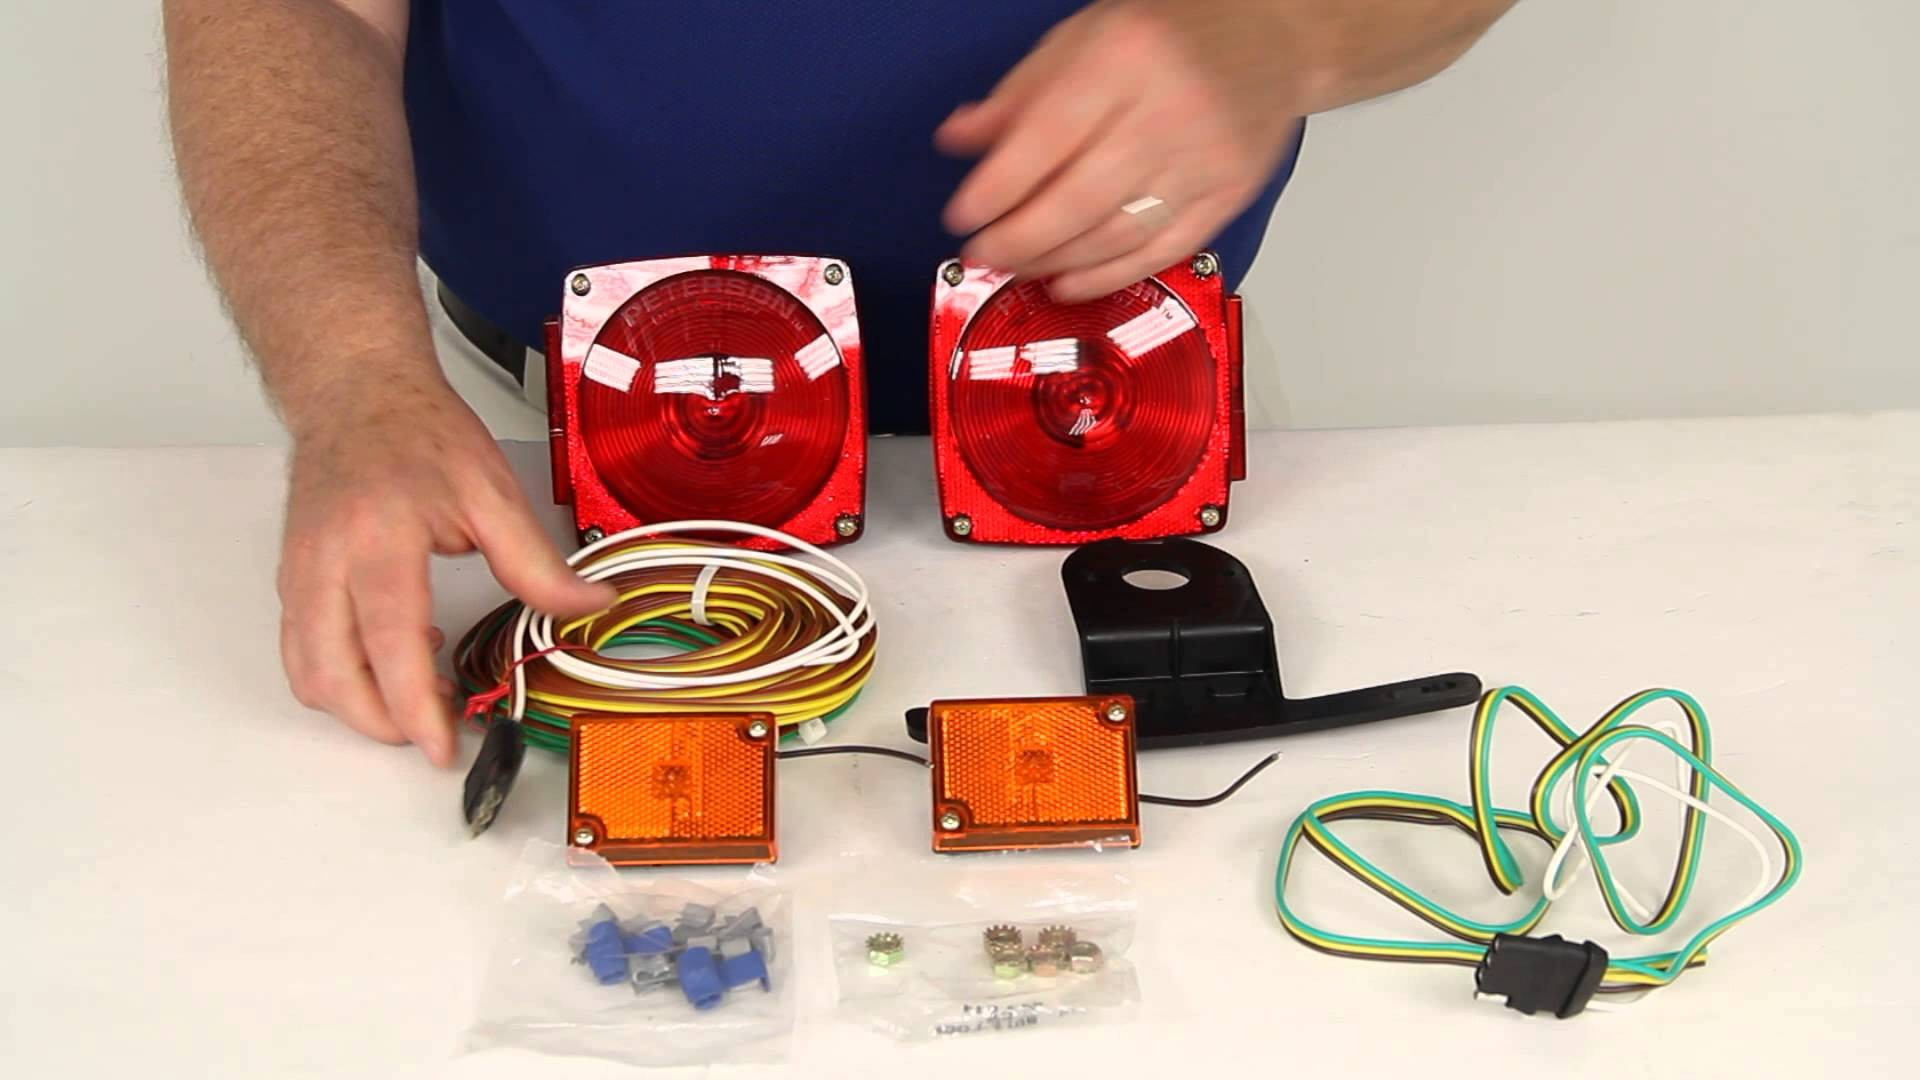 Harbor Freight Trailer Light Kit Wiring Diagram Free Download Harness Images Gallery